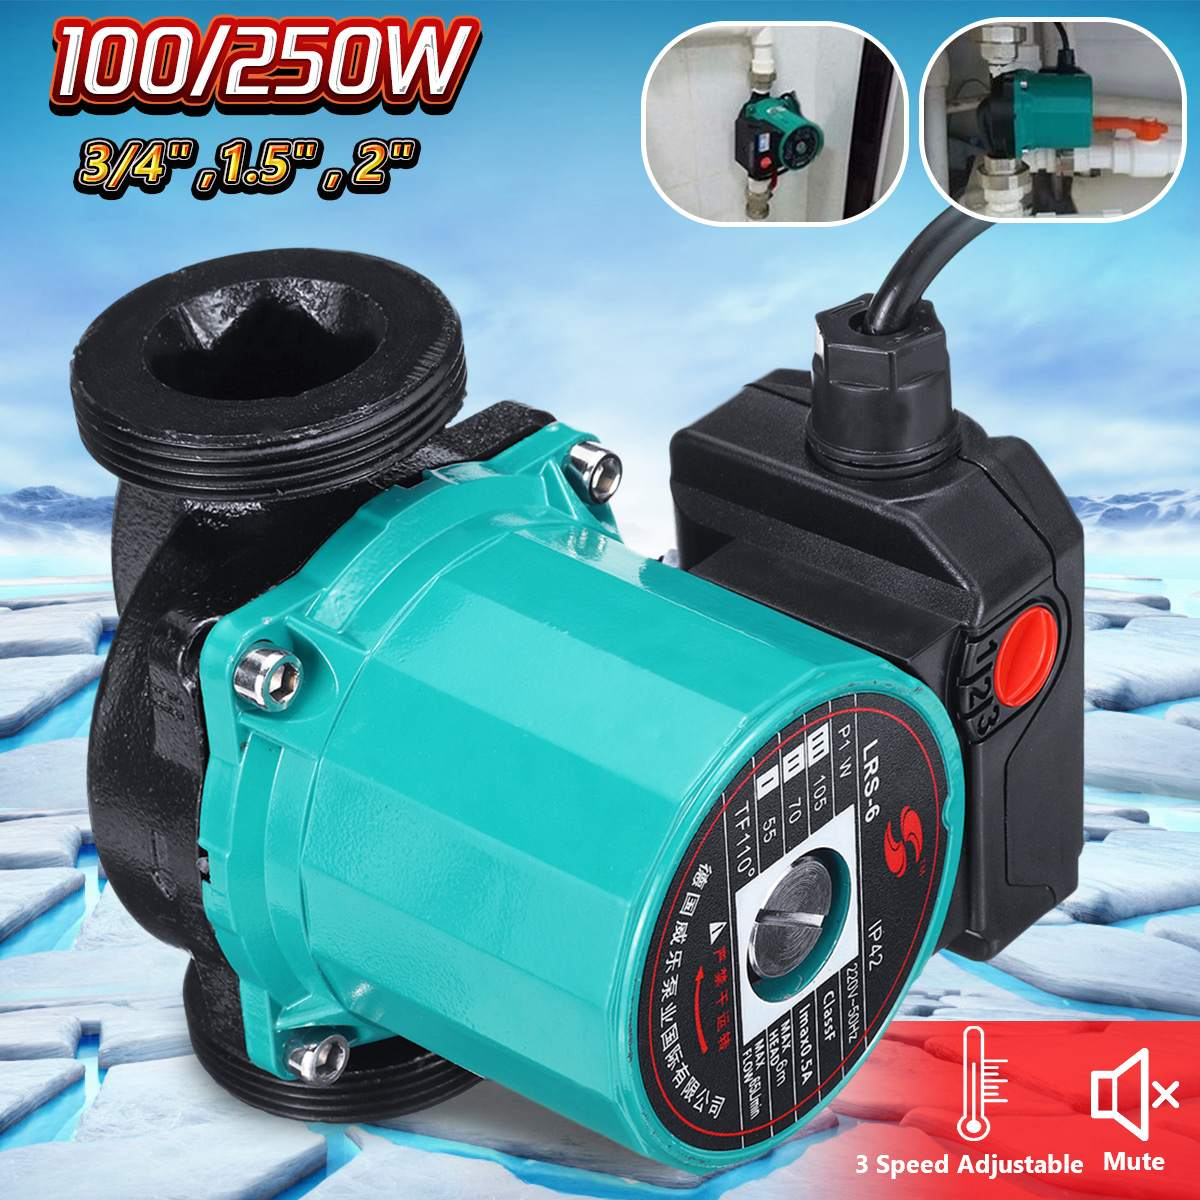 3-Speed 220V Central Heating Circulator Mute Boiler Hot Water Circulating Pump Cast Iron IP42 Protection F Class Insulation